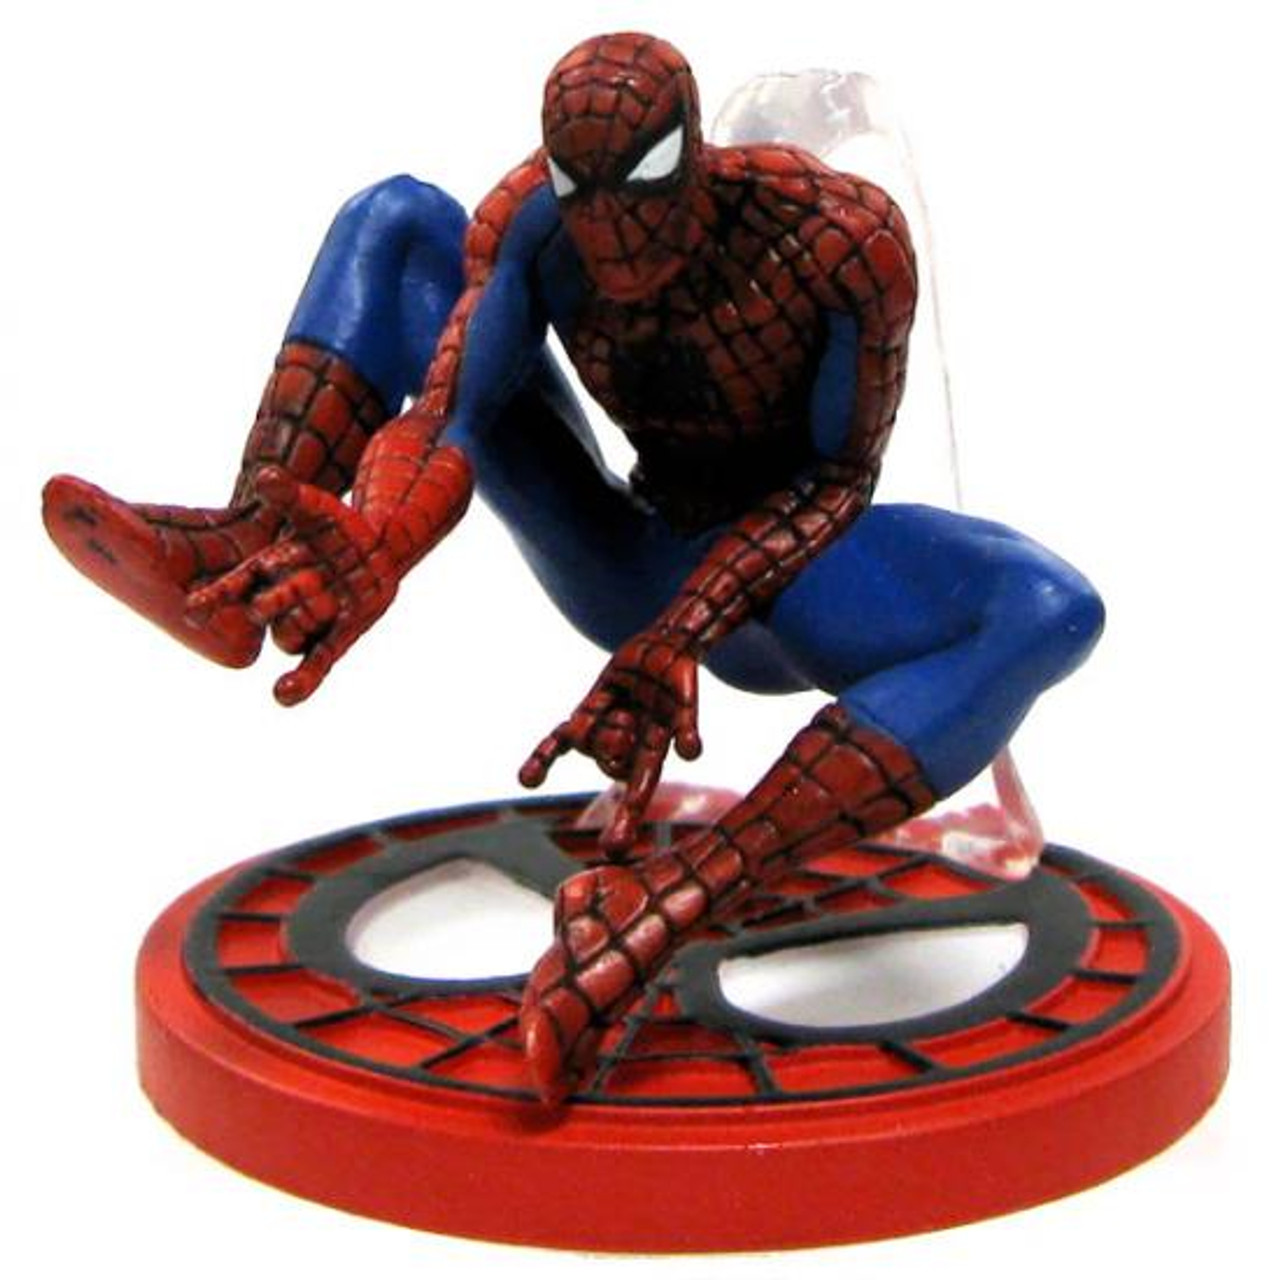 Disney Marvel Spider-Man Exclusive 2.5-Inch PVC Figure [Leaping Loose]